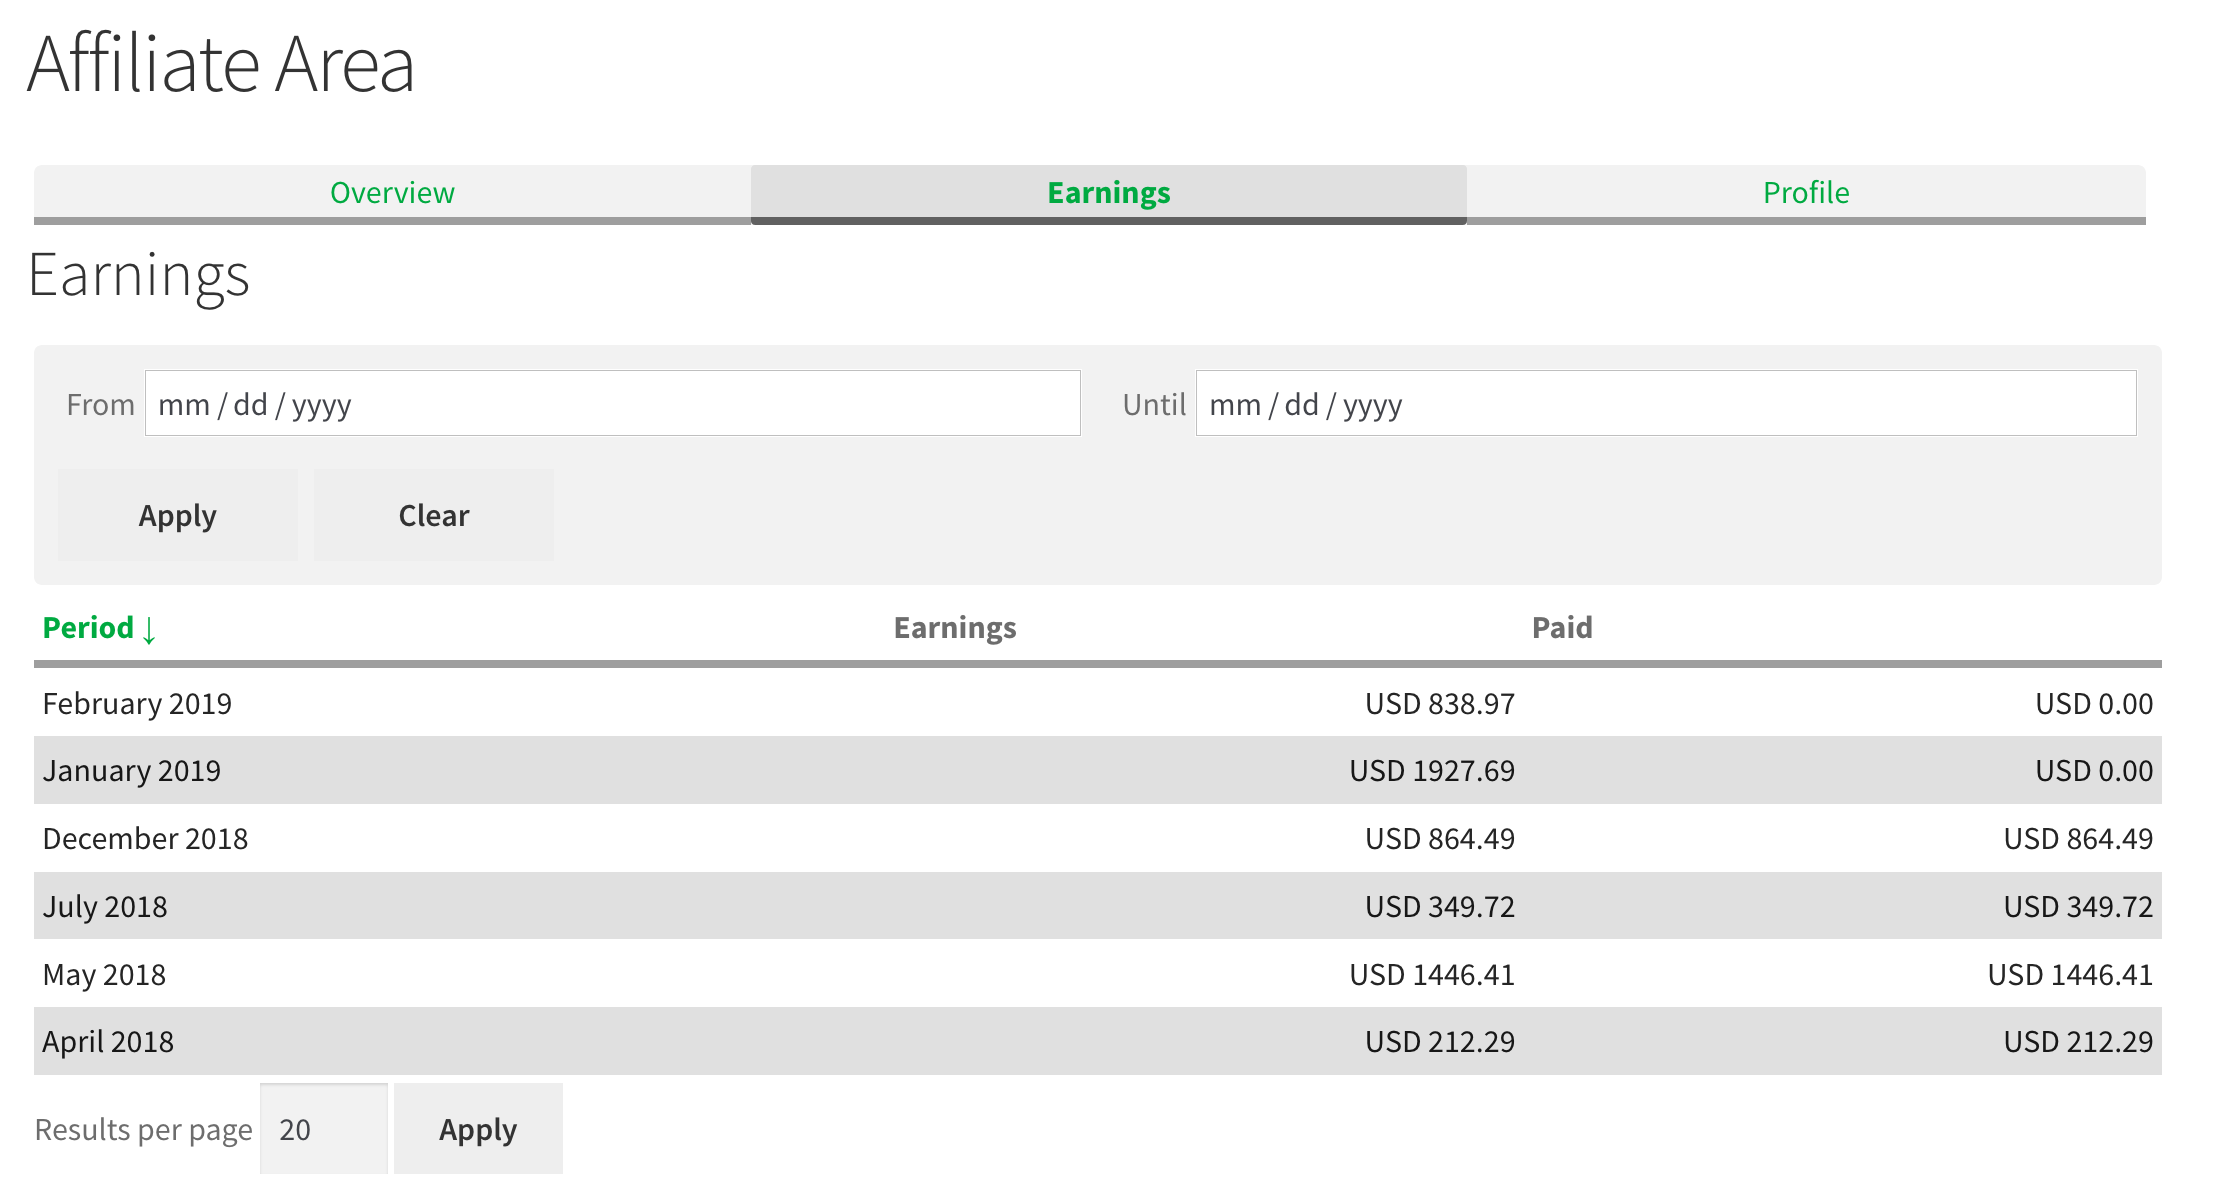 Affiliates Dashboard Earnings - Shows affiliates their monthly earnings on the front end in the dashboard section.